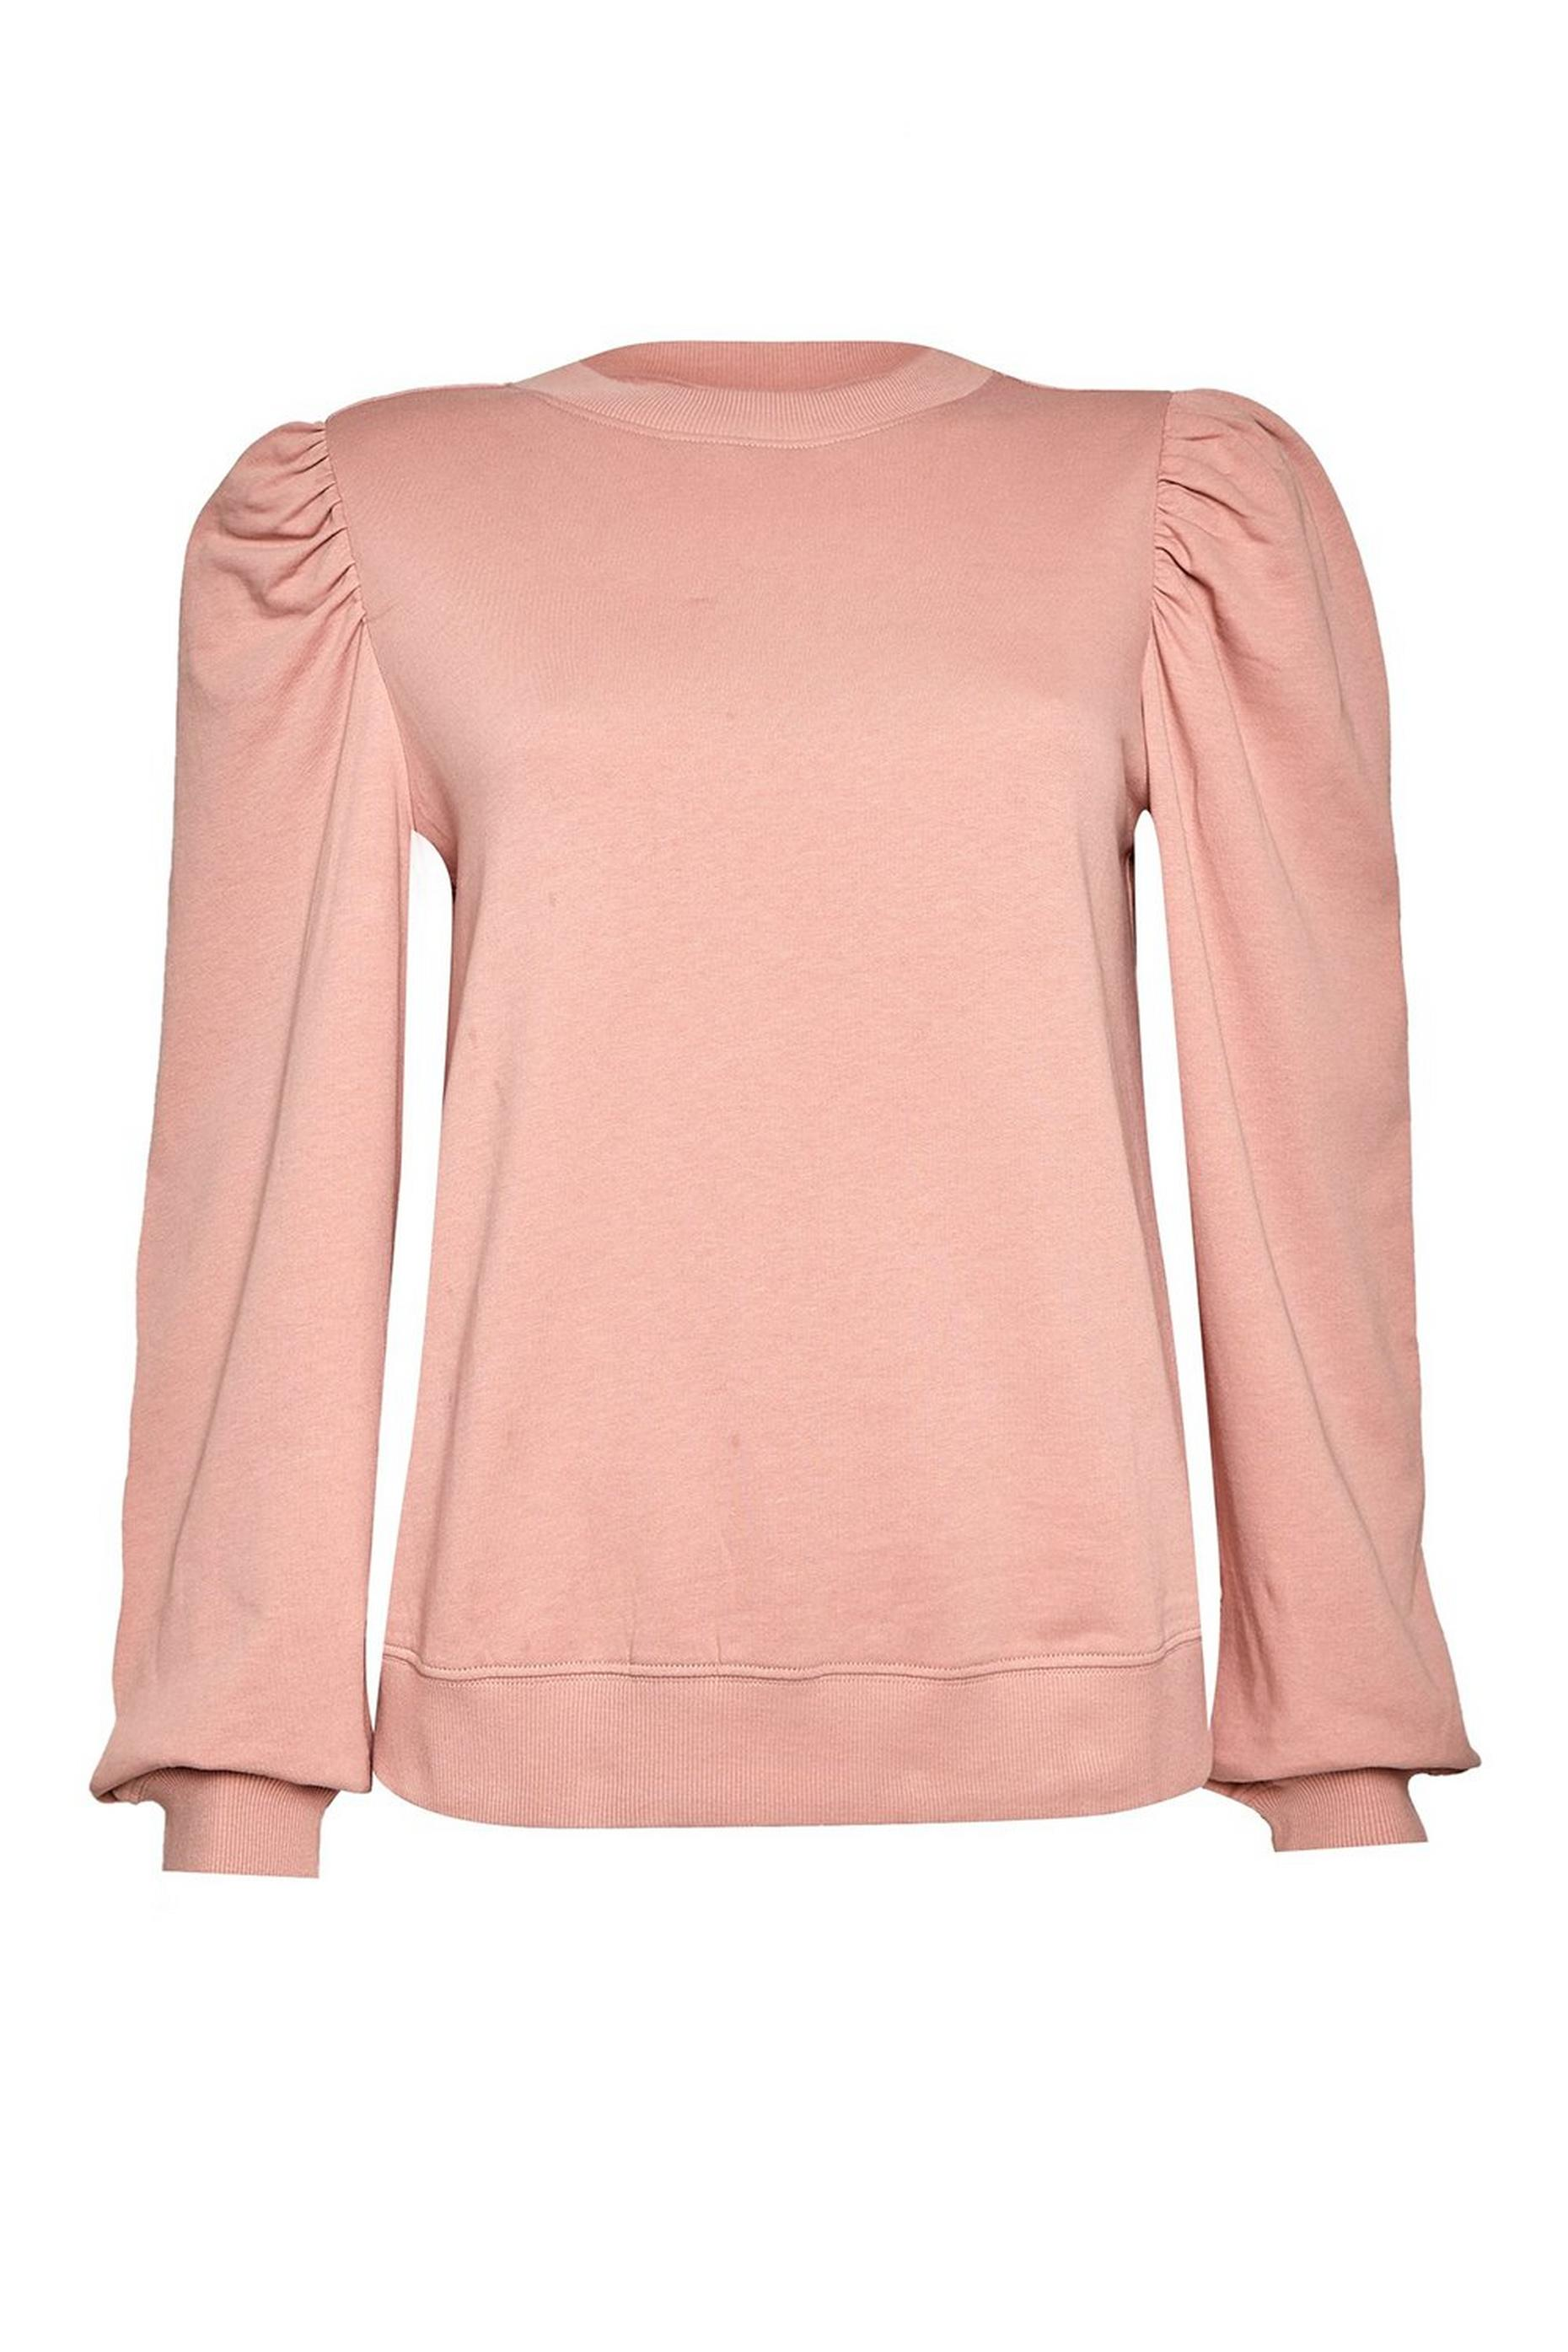 Tall Pink Luxe Lounge Sweatshirt